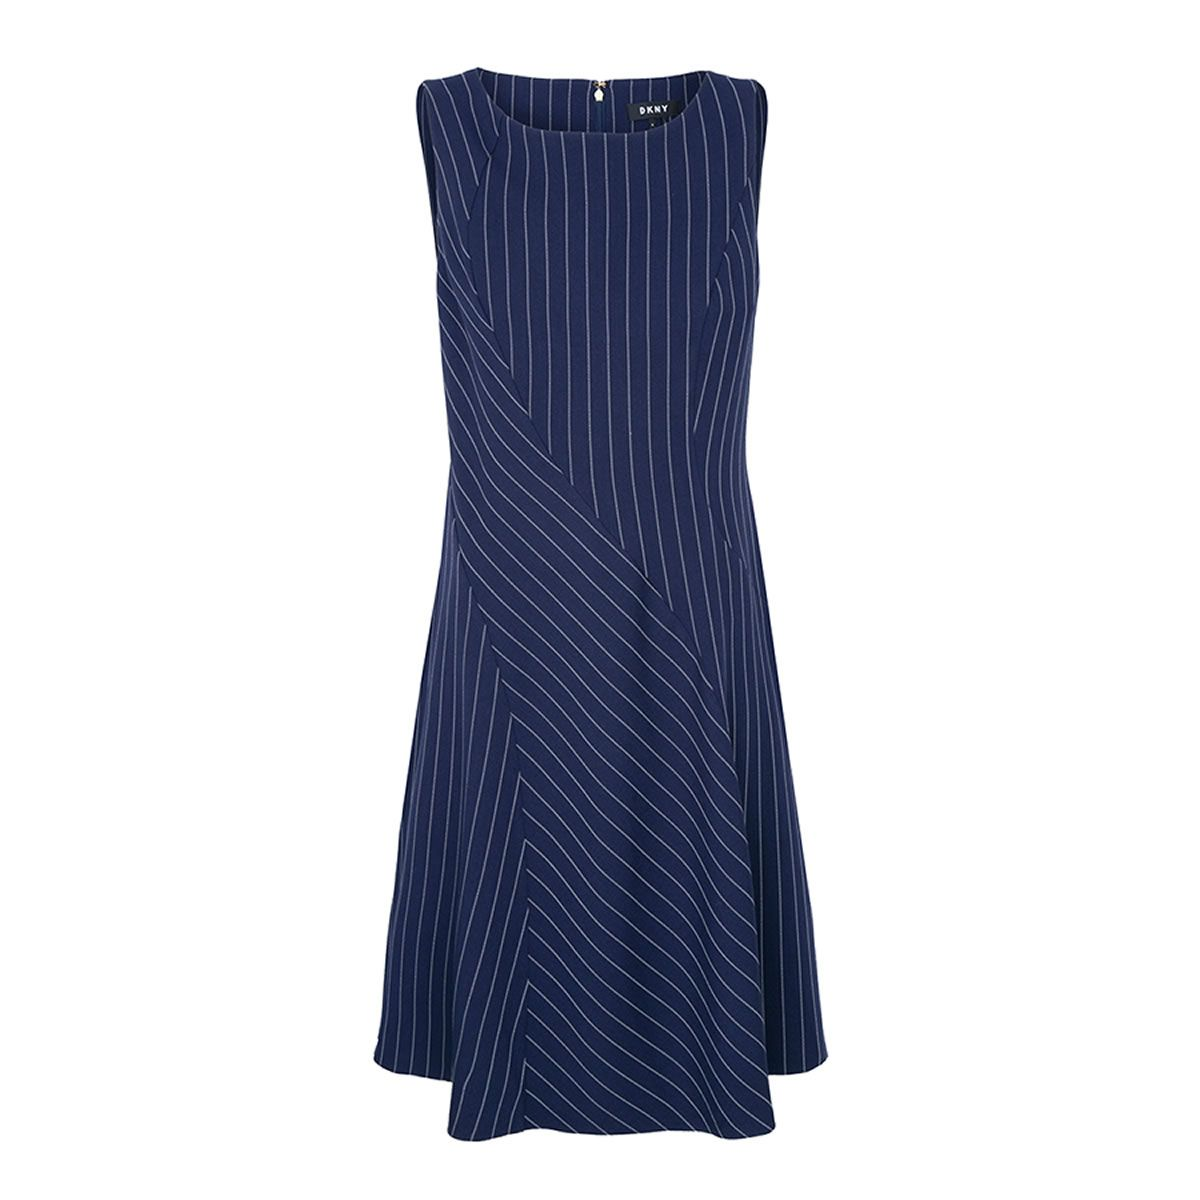 d864a068b5c27 DKNY Dresses for Women - Macy's